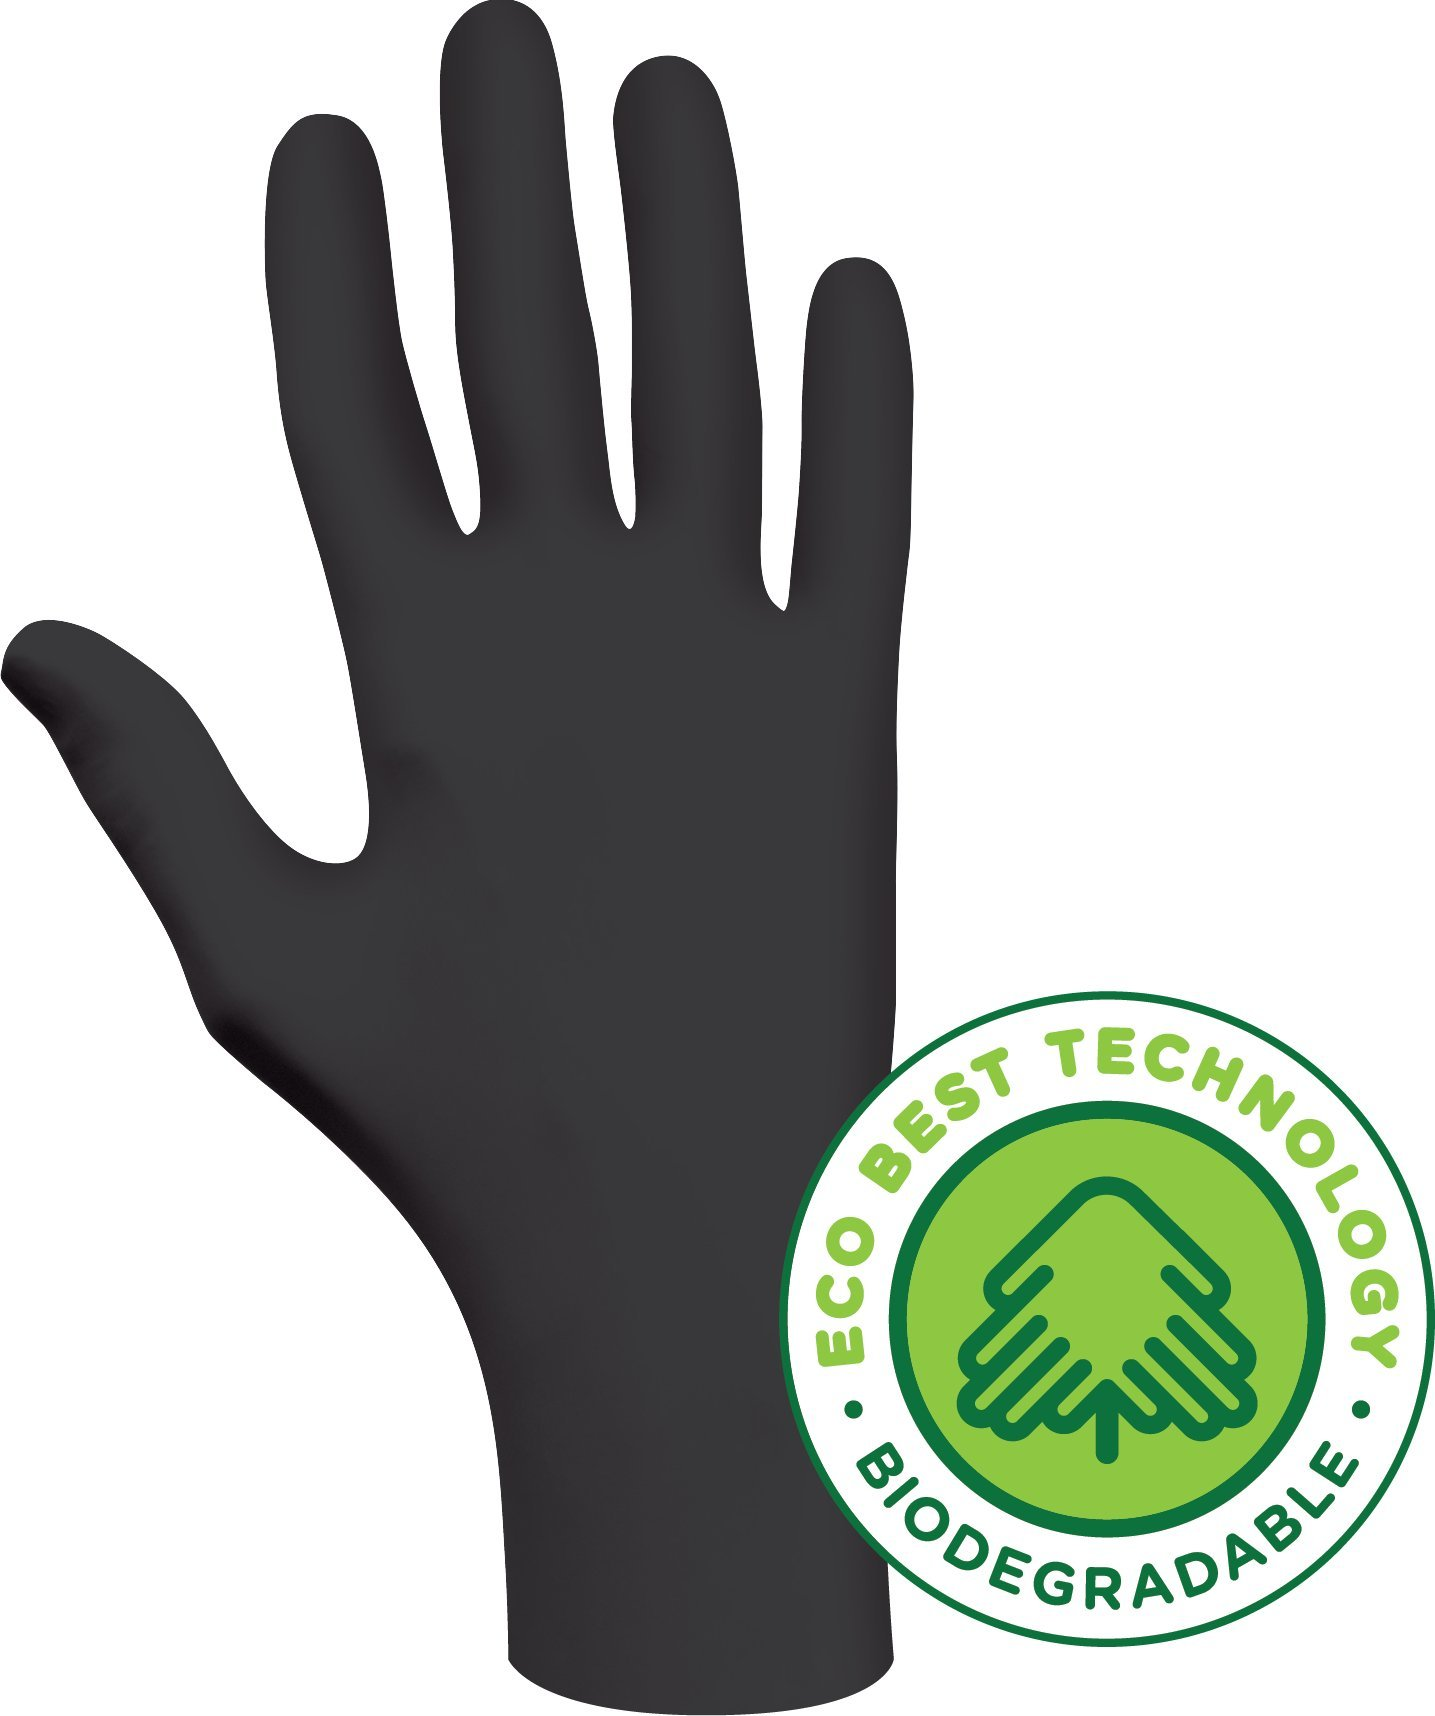 SHOWA Best 6112PF  Eco Best Technology Biodegradable Industrial Grade Nitrile Glove, Disposable, Powder-Free, 4 mil Thickness, Small, Black (Pack of 100)